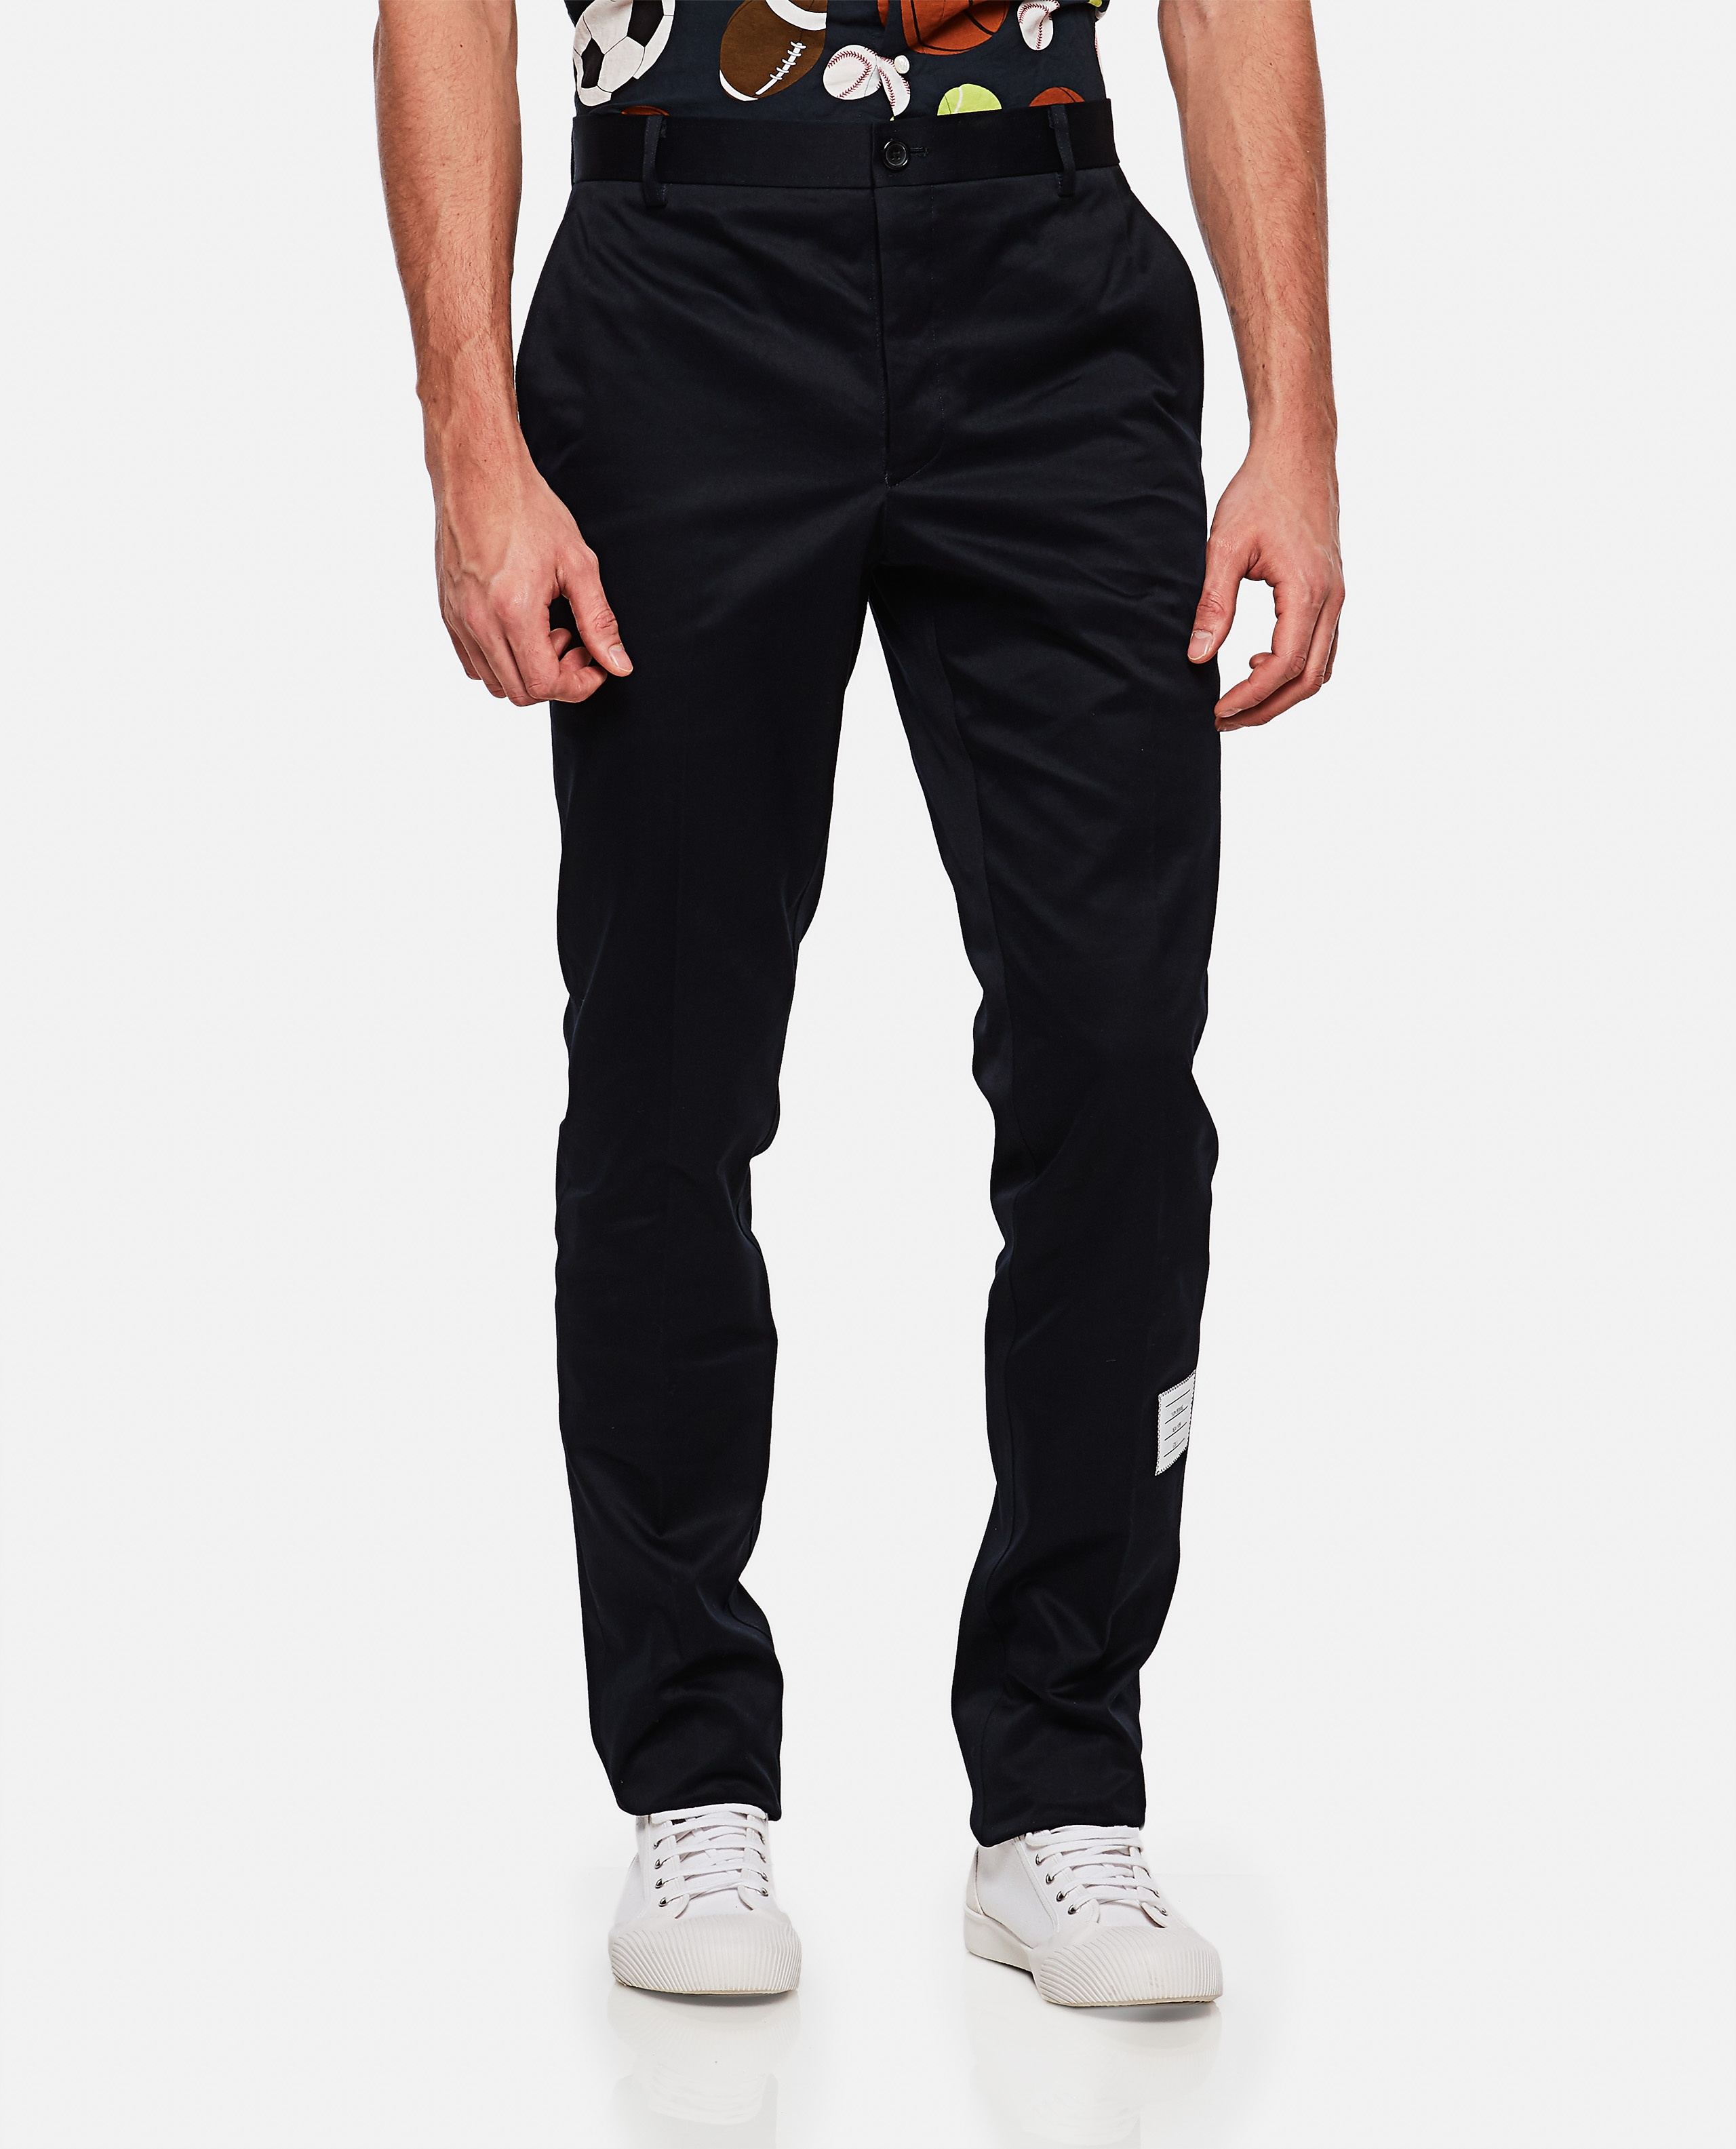 Cotton twill trousers Men Thom Browne 000215830032004 1